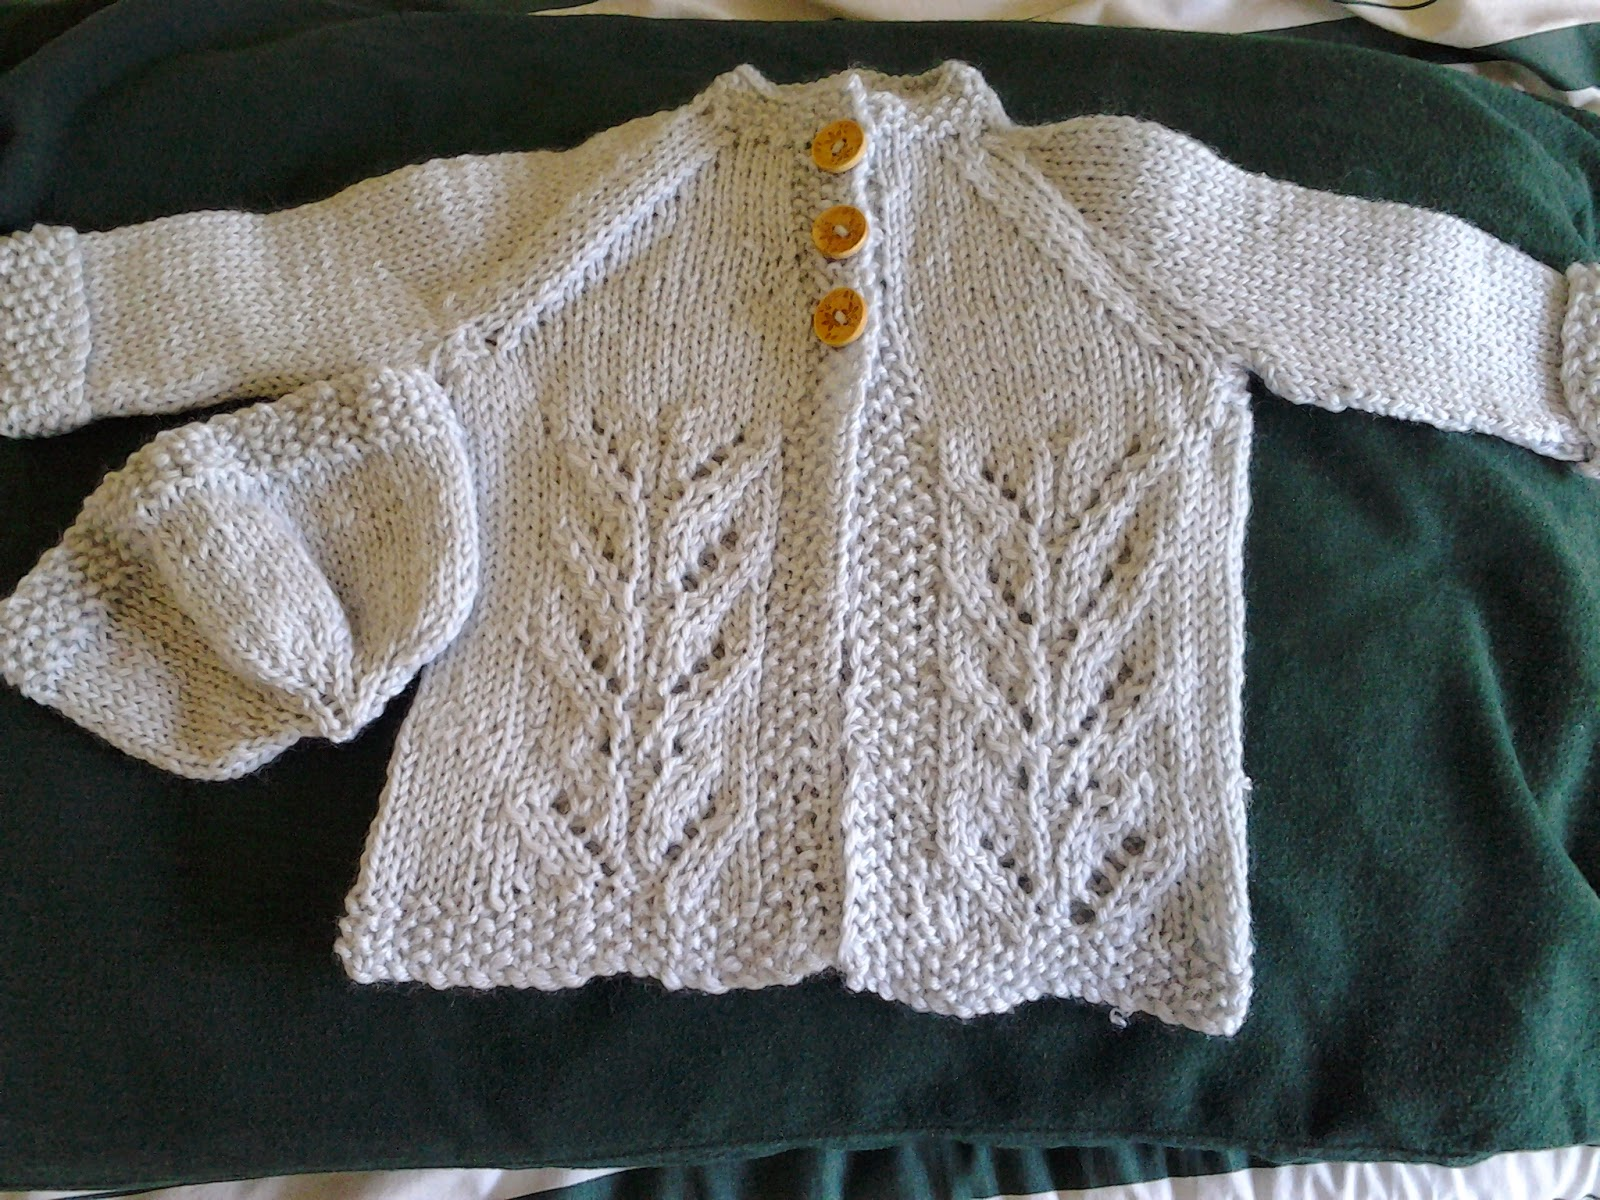 Free Raglan Sweater Knitting Pattern : alankarshilpa: A Free Knitting pattern - Baby Cardigan Raglan from Bottom up.